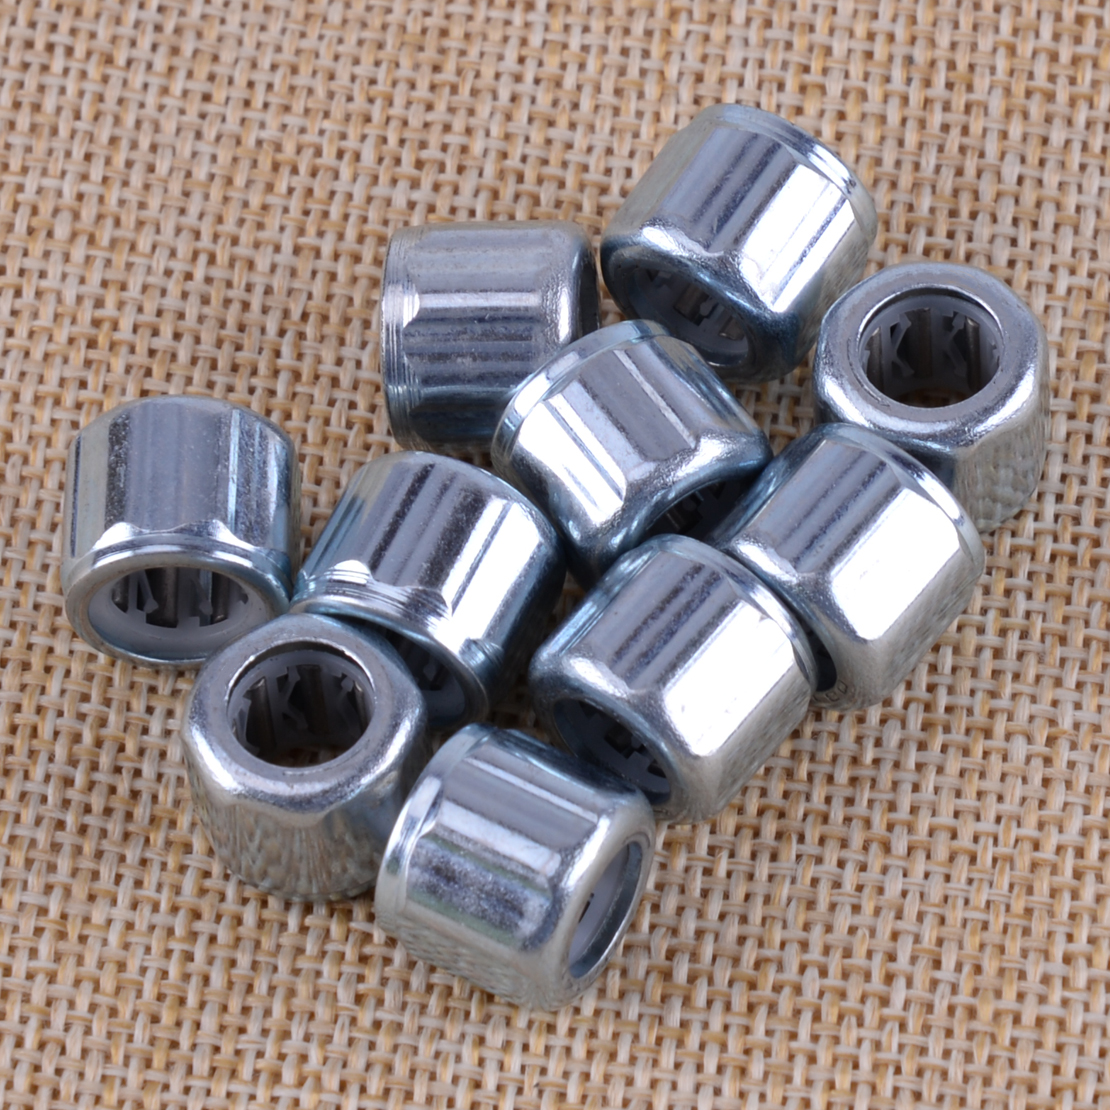 LETAOSK 10PCS Silver Octagonal One Way Clutch Bearing Needle Roller 1.4x0.8x1.2cm Fit For EasyMop HF081412 Replacement